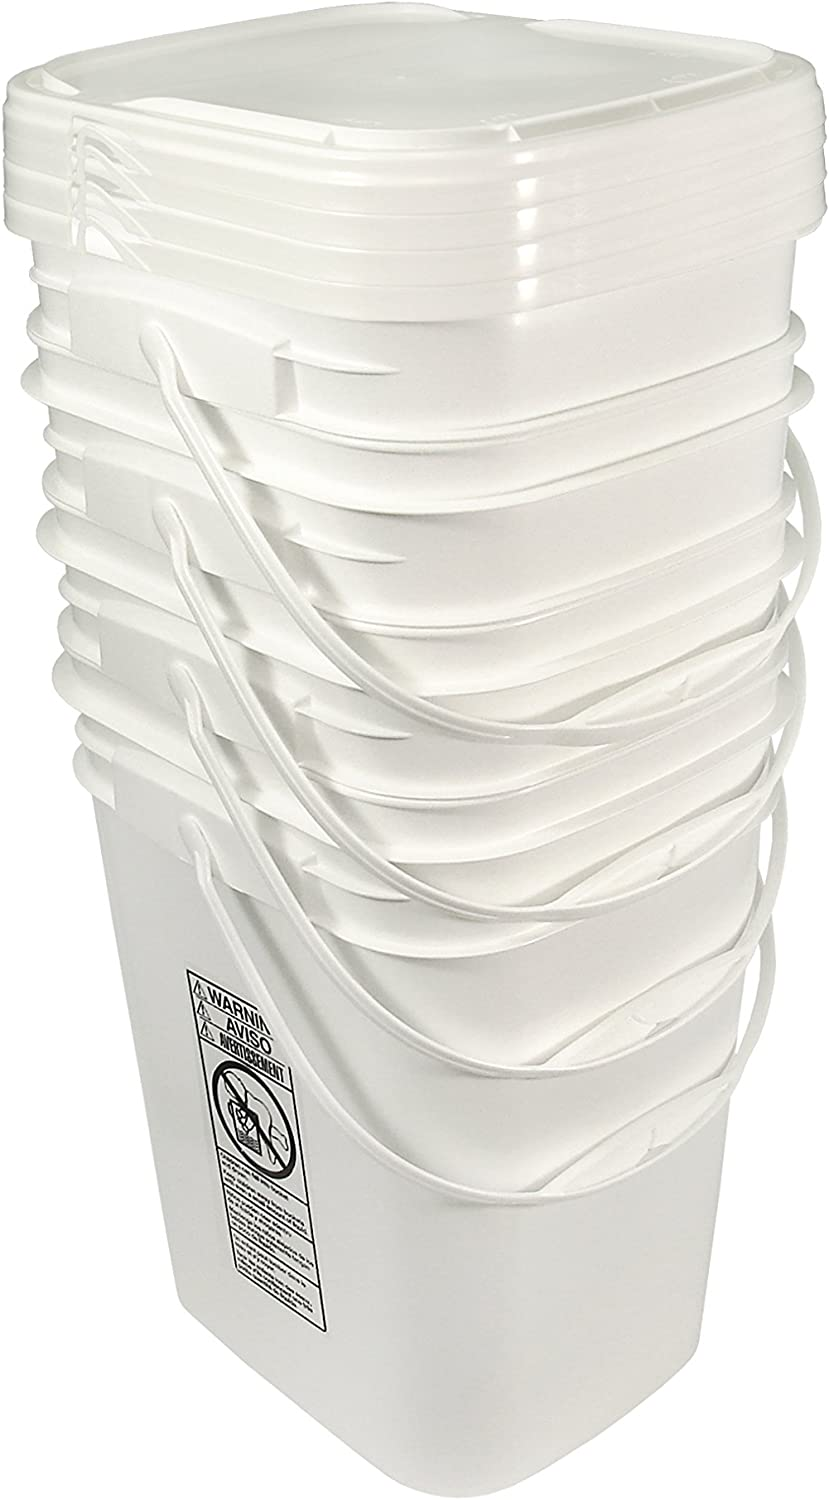 5.3 Gallon White Rectangular Bucket/Pail with Hinged Snap Lid, 4 Pack